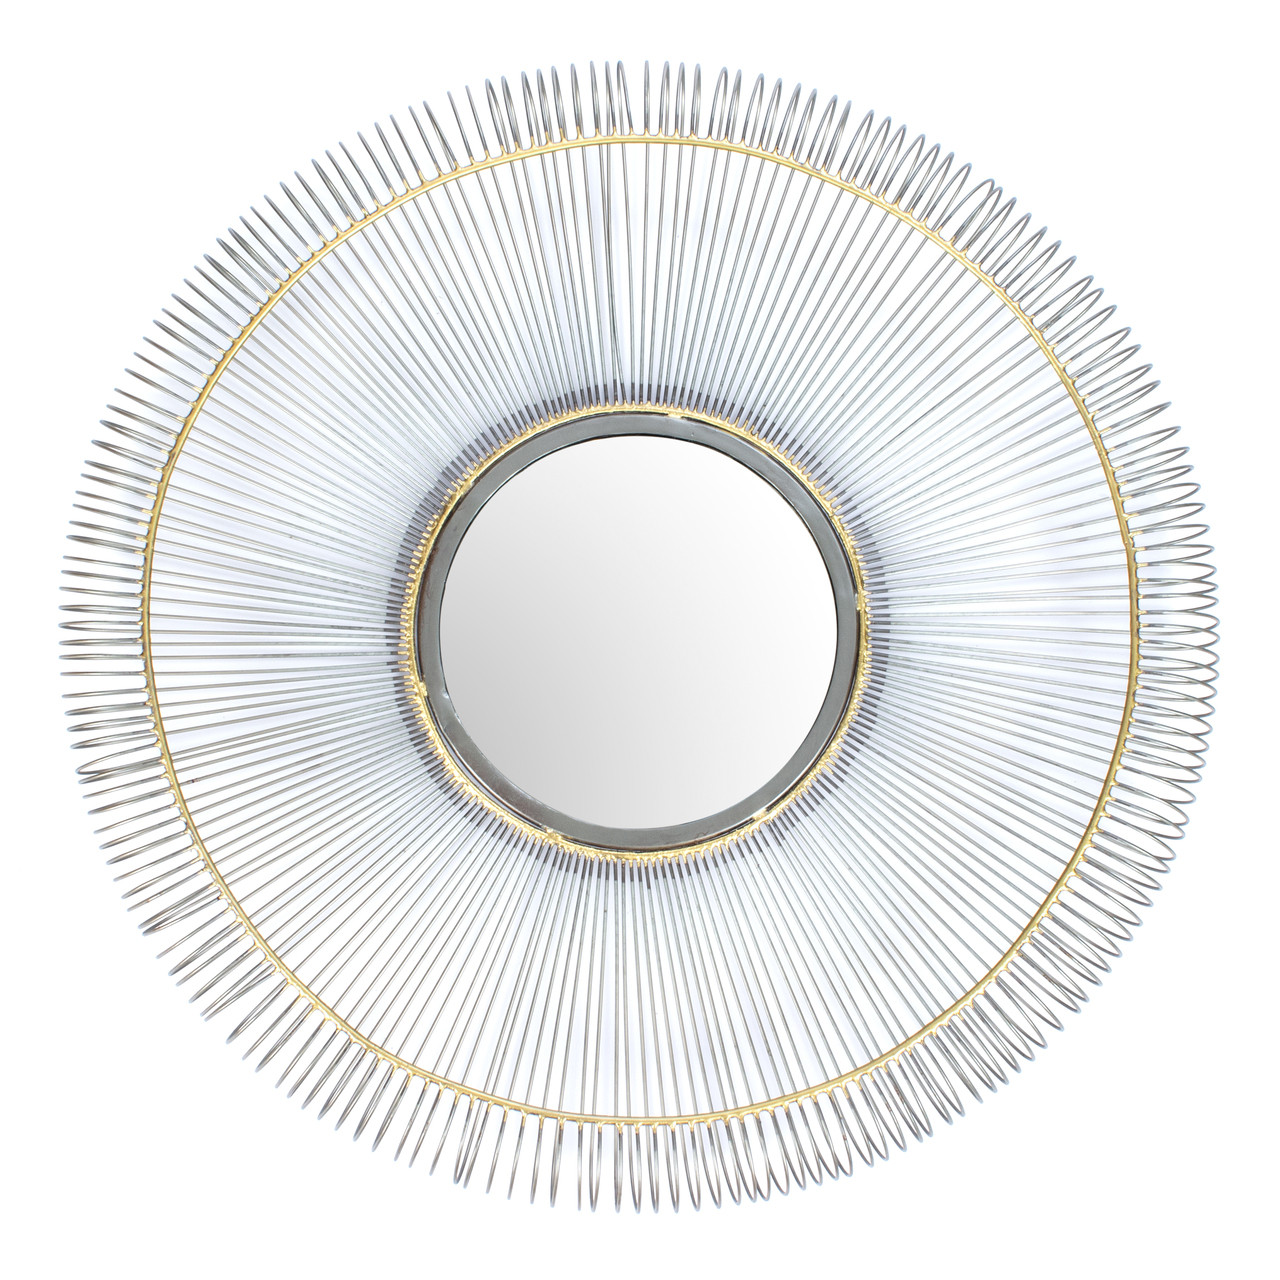 Mirror Wall Home Decor Mounted Round Large Silver Nickel Gold Framed Big Hallway